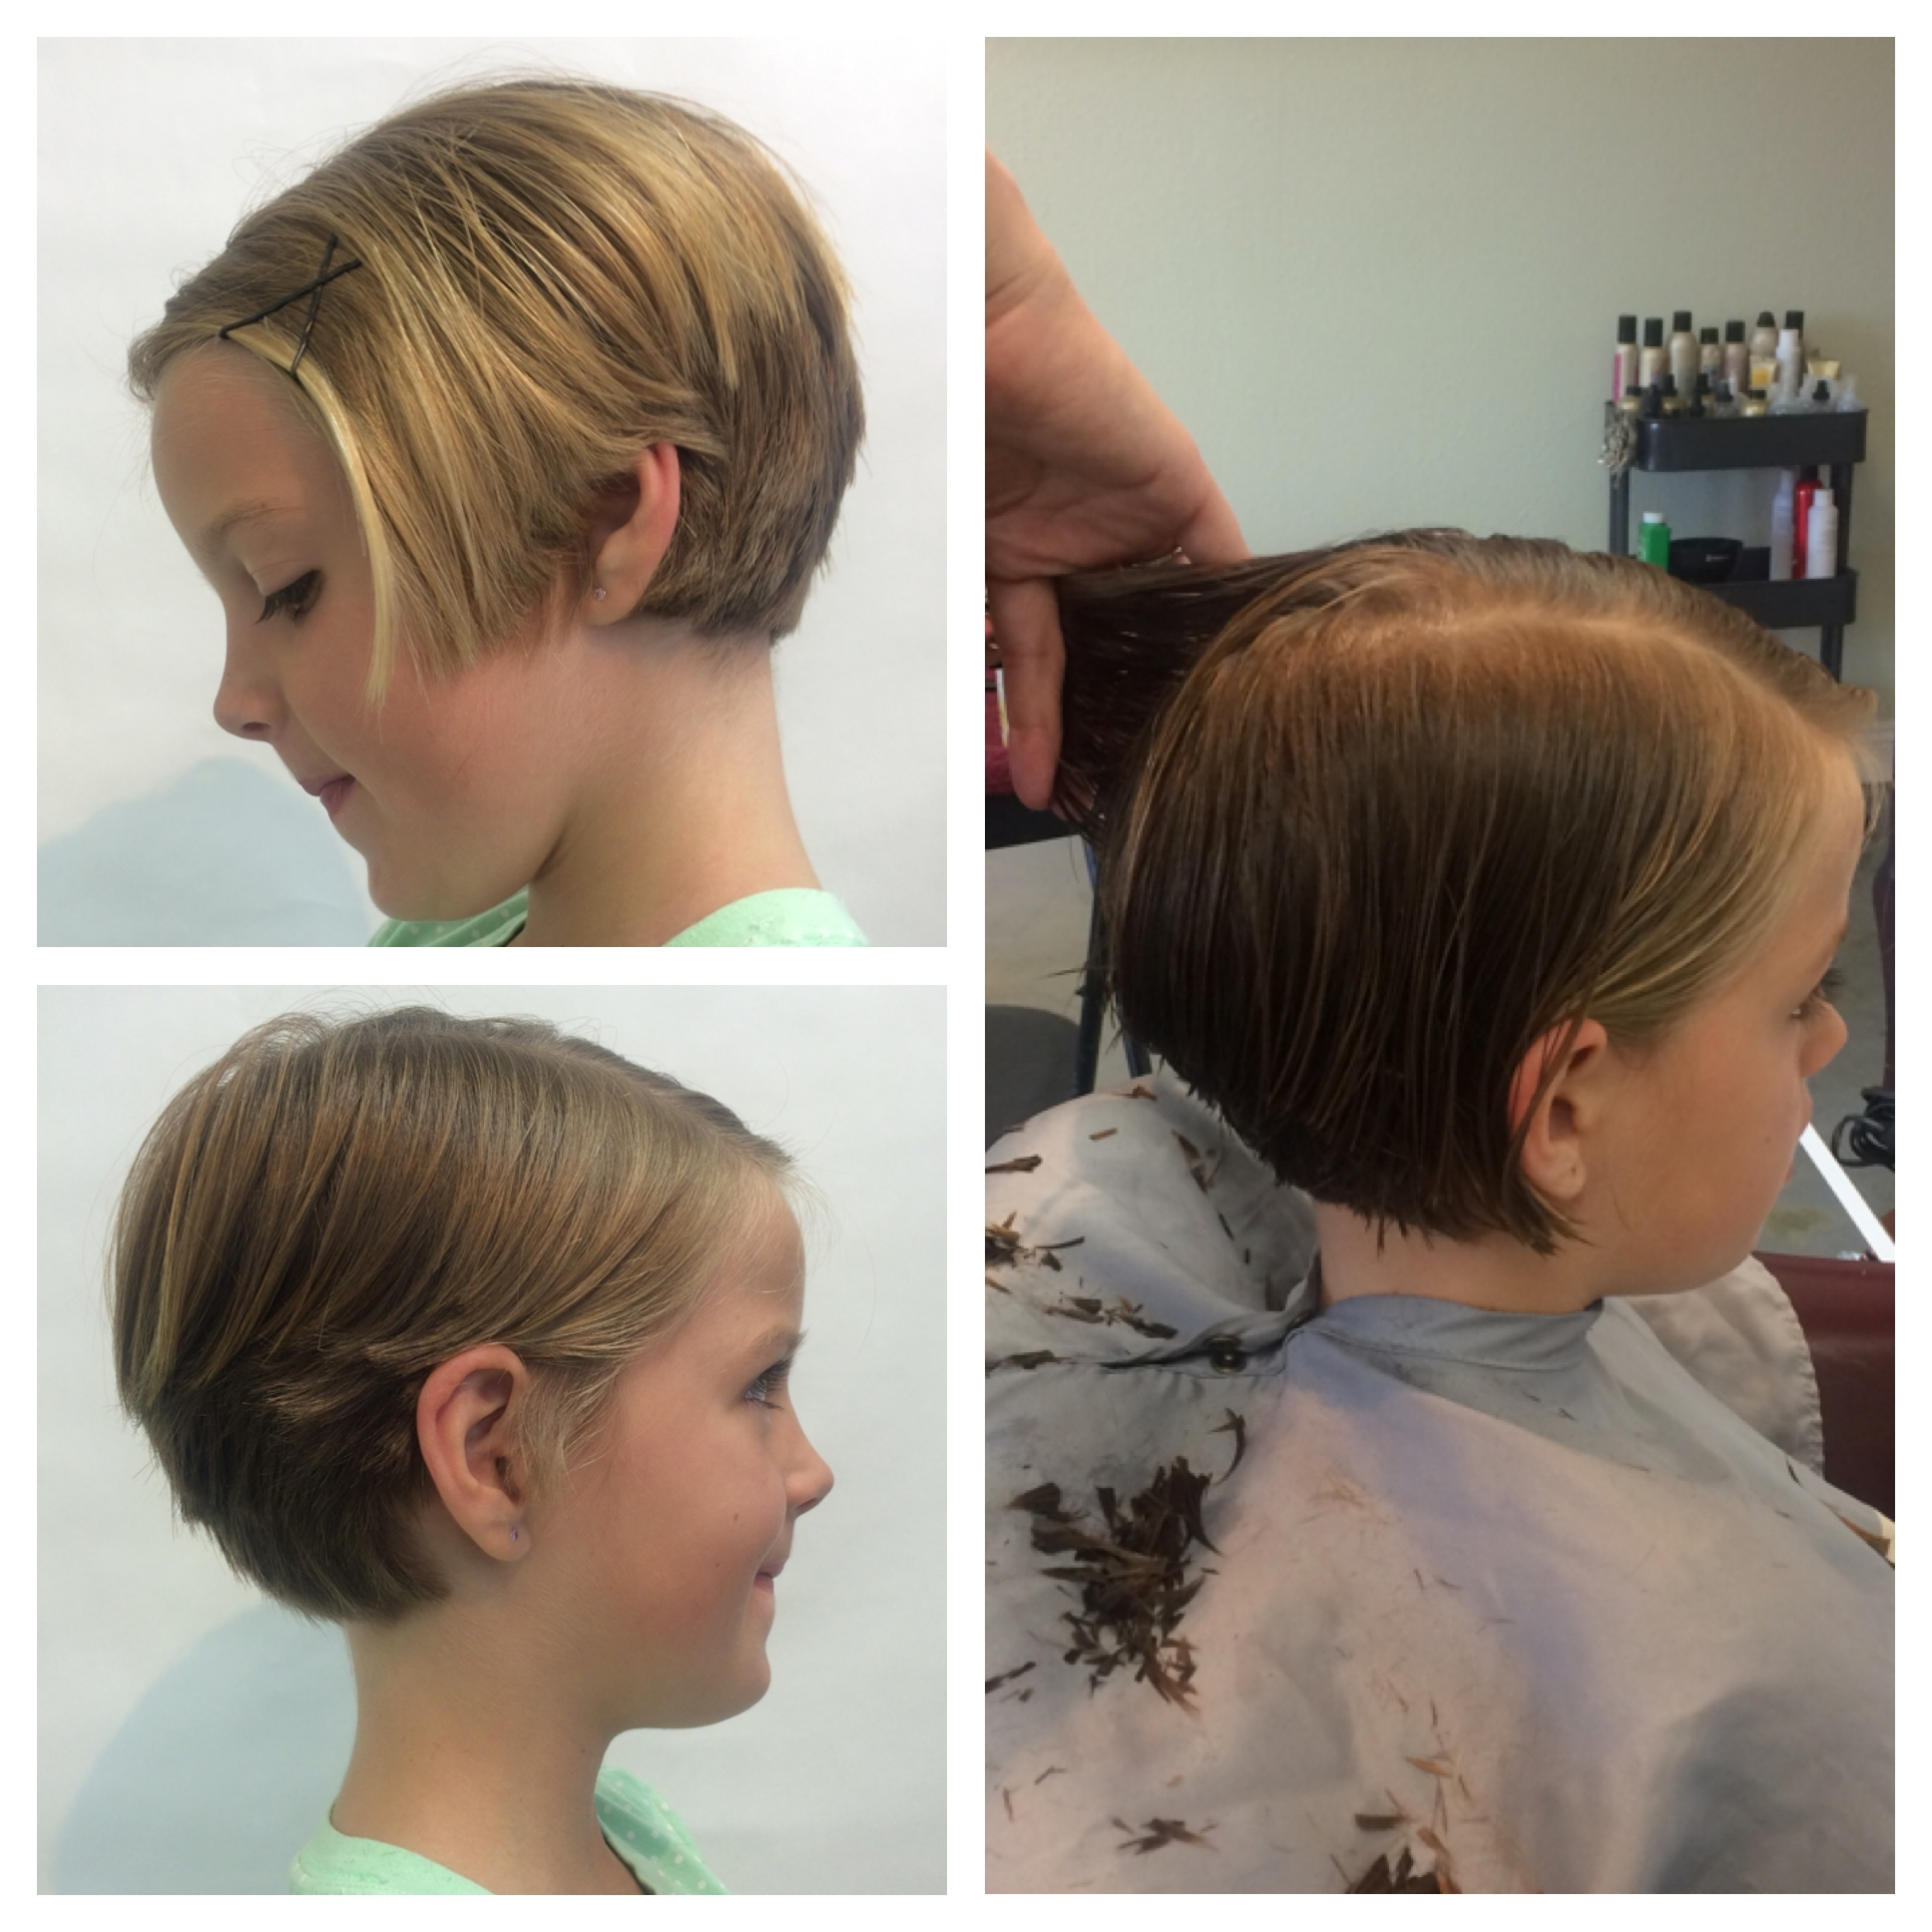 Child Pixie Hair Cut Girls Pixie Hairstyle Cute Short Hair In Recent Little Girl Pixie Hairstyles (View 5 of 15)